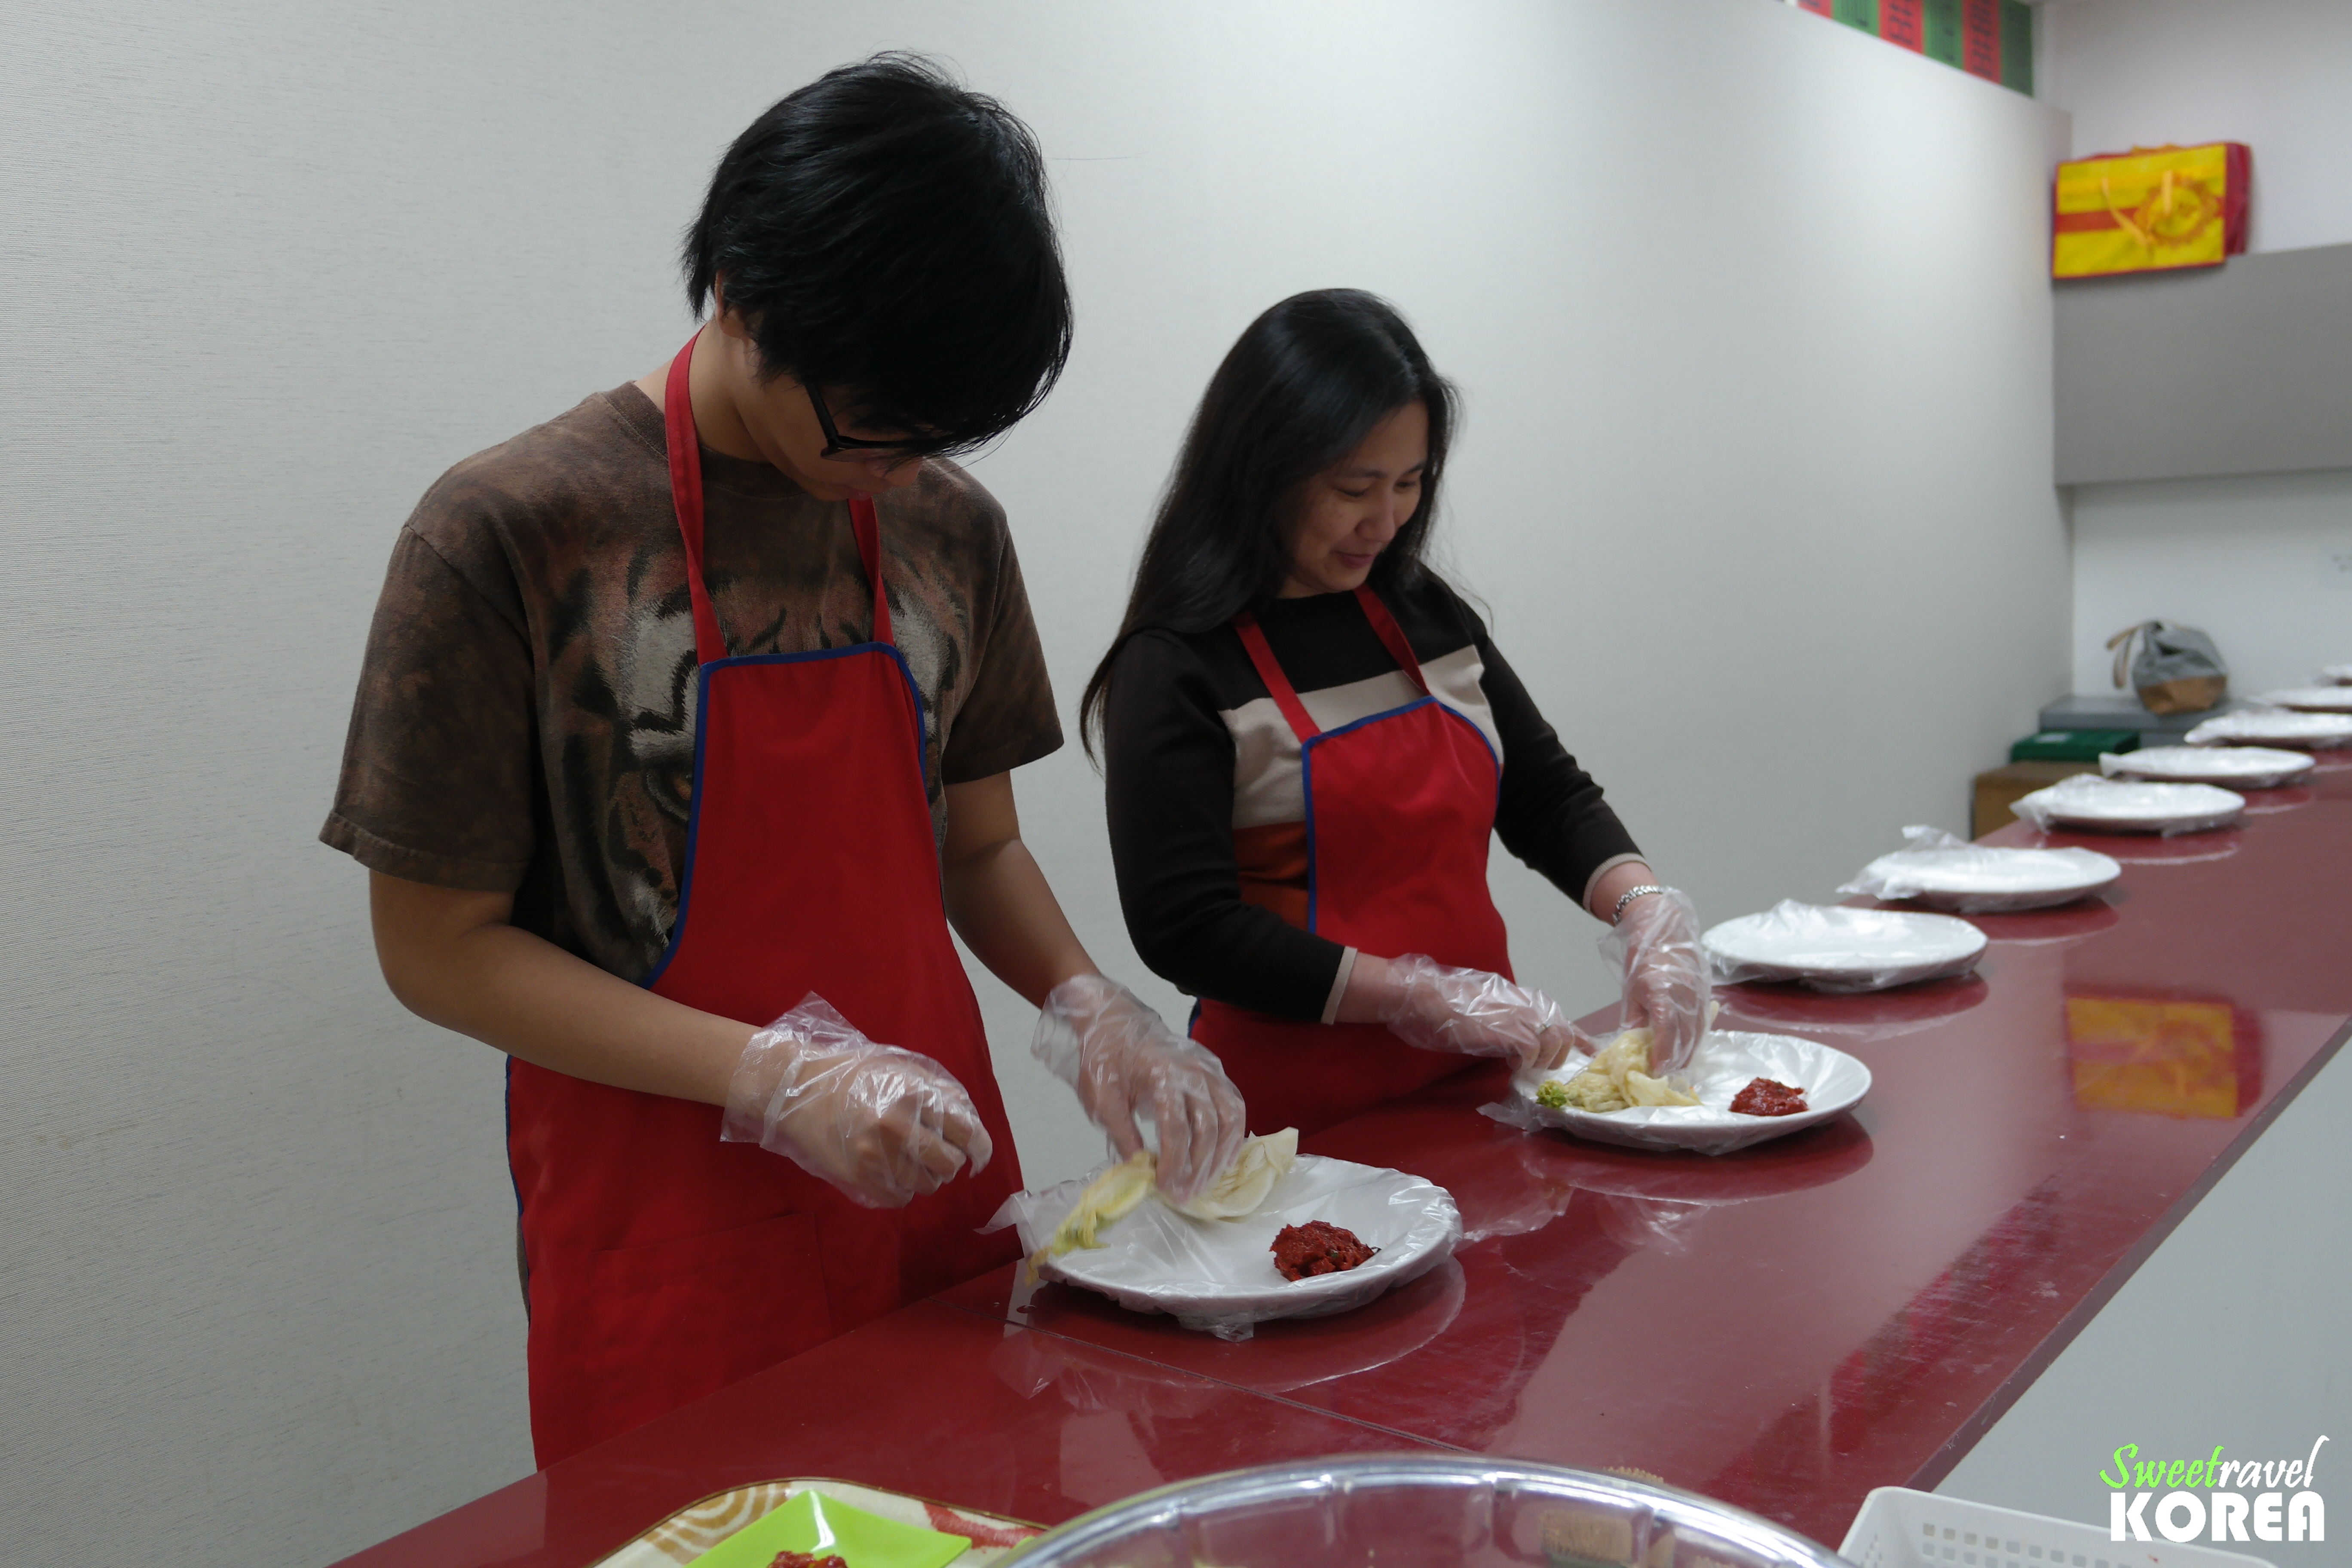 Korea-private-tour-kimchi-making.JPG